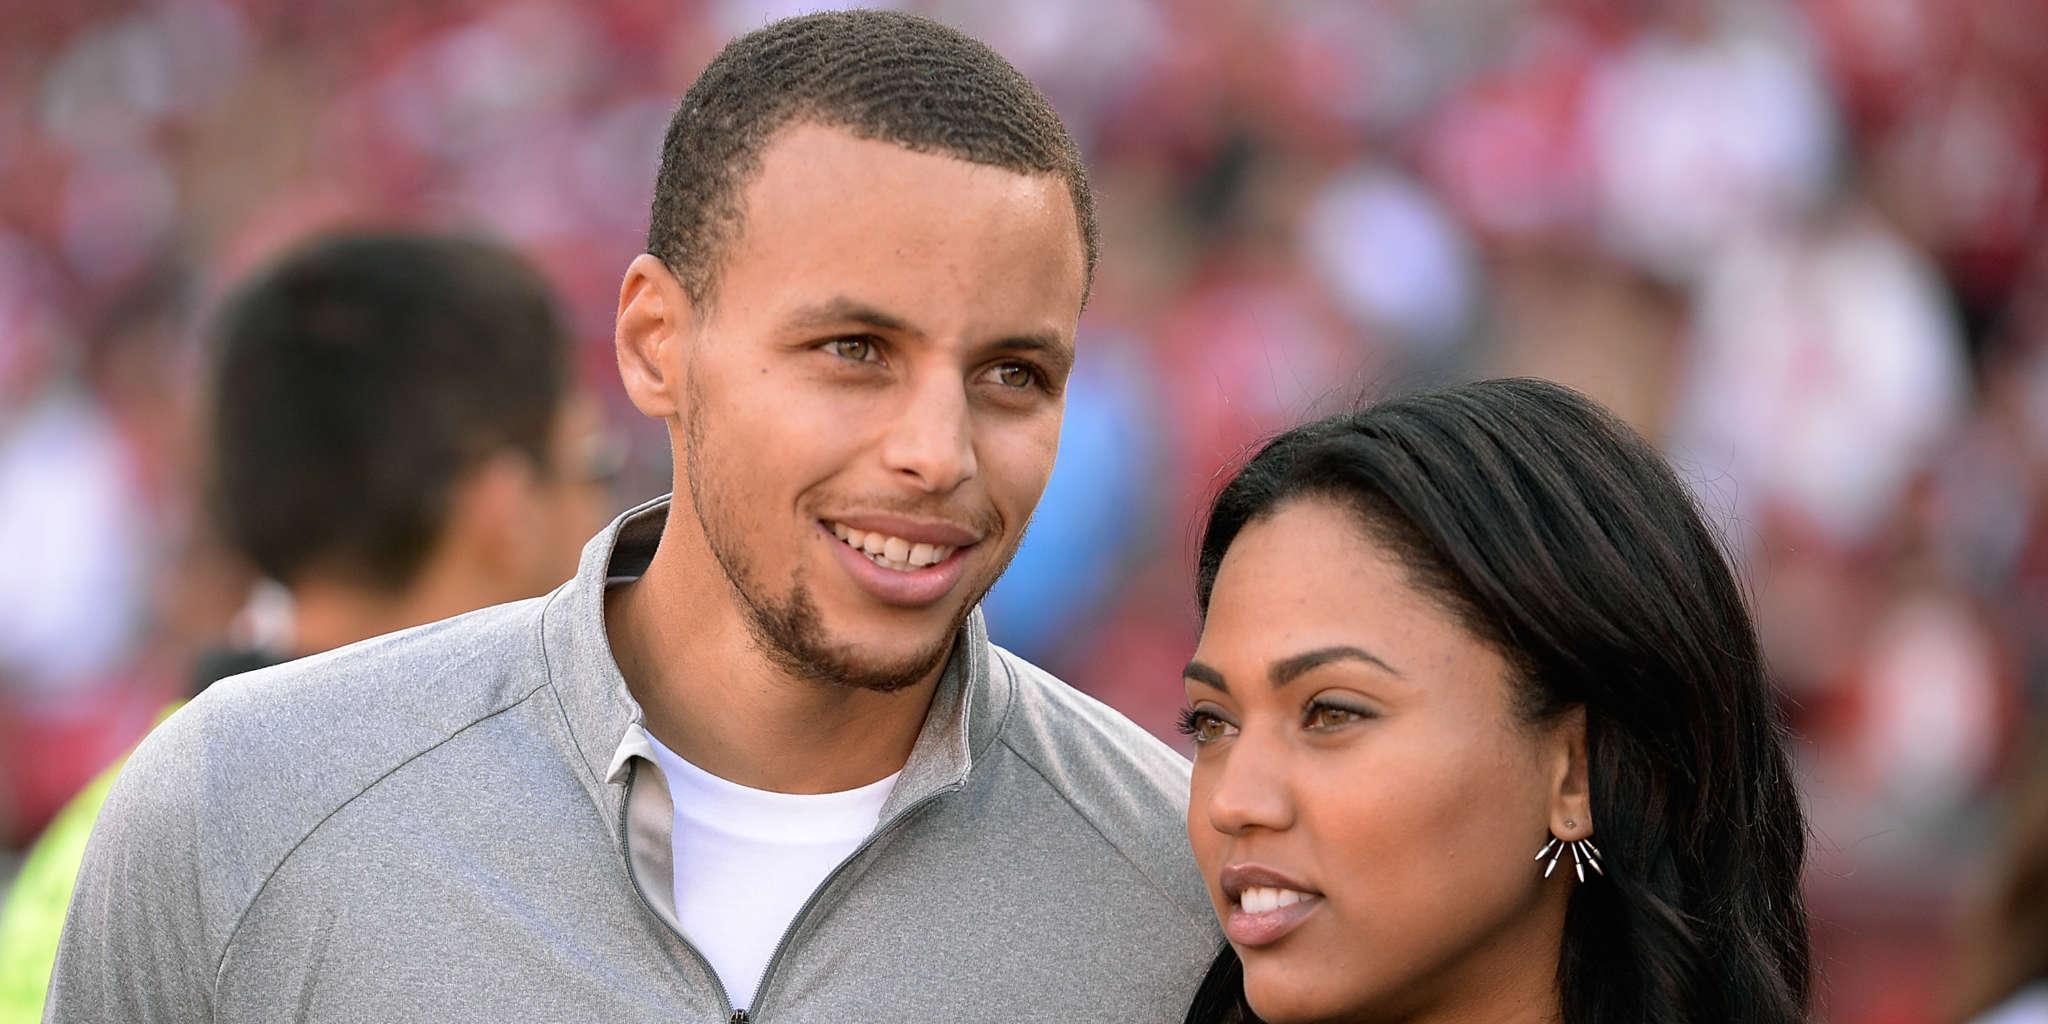 Steph Curry Pays The Sweetest Tribute To Wife Ayesha On Her Birthday